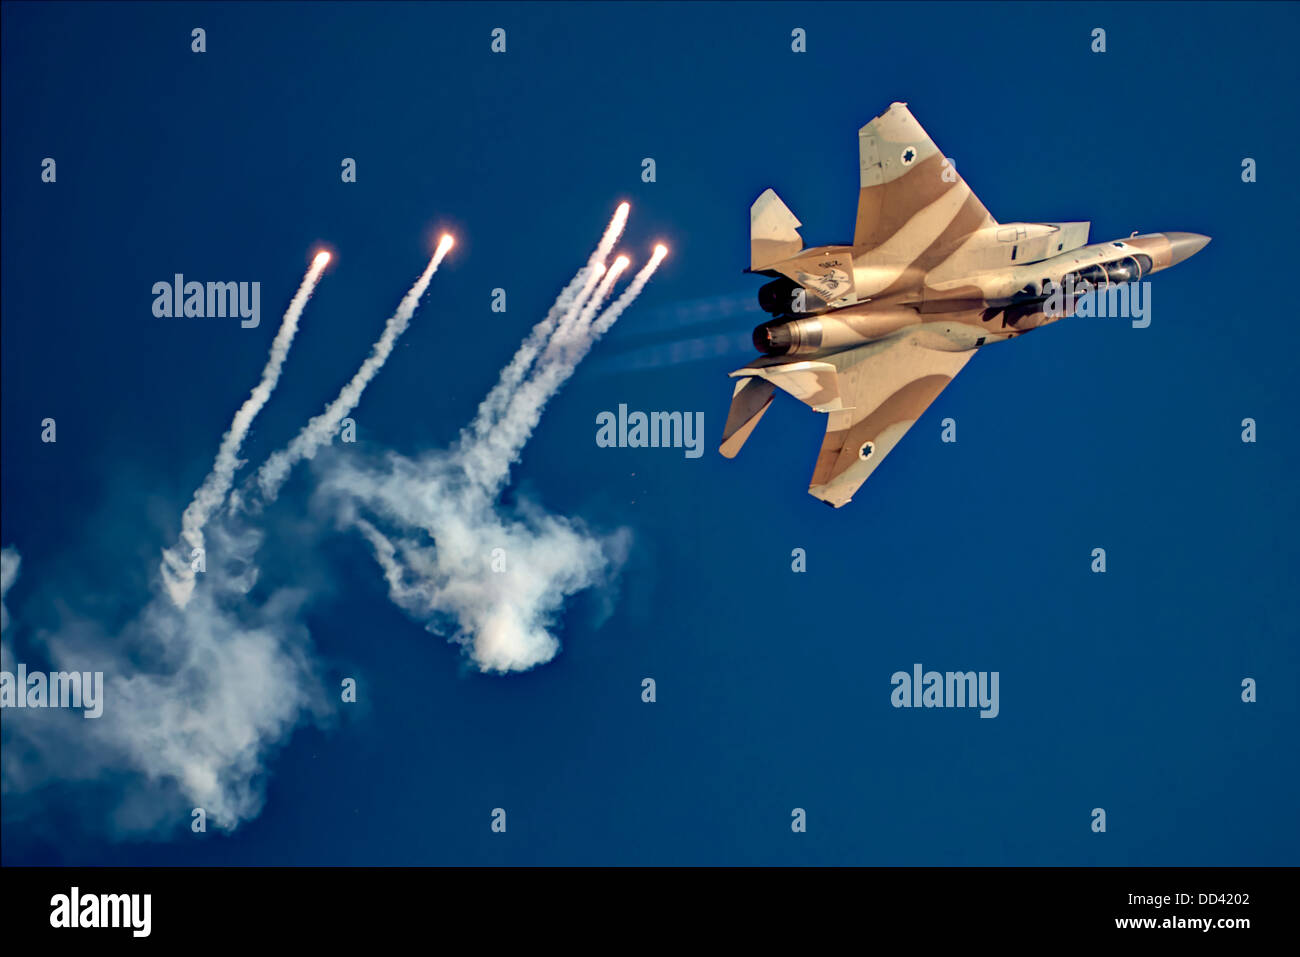 Israeli Air force (IAF) Fighter jet F-15I (Raam) in flight Emitting anti-missile flares - Stock Image